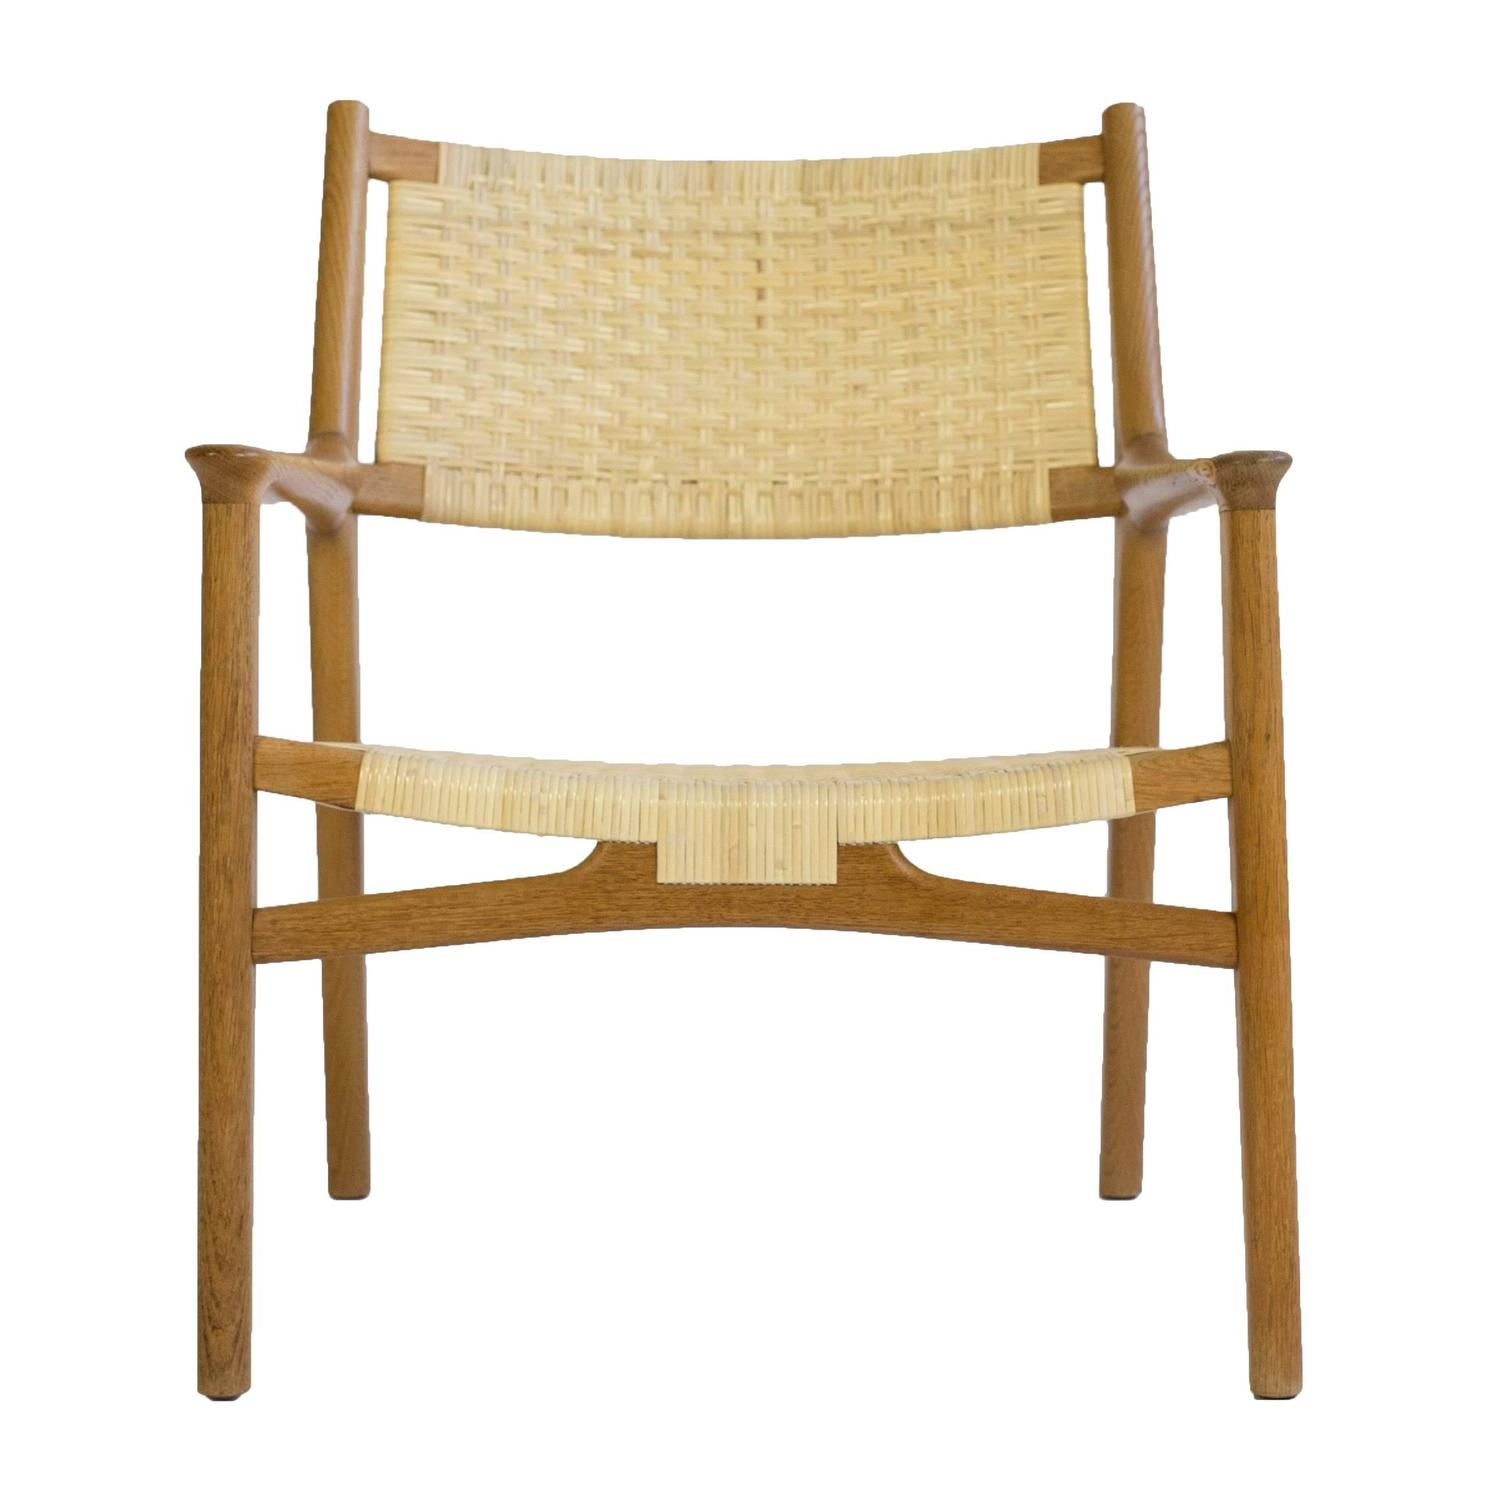 Hans J Wegner JH 516 Chair for Johannes Hansen For Sale at 1stdibs